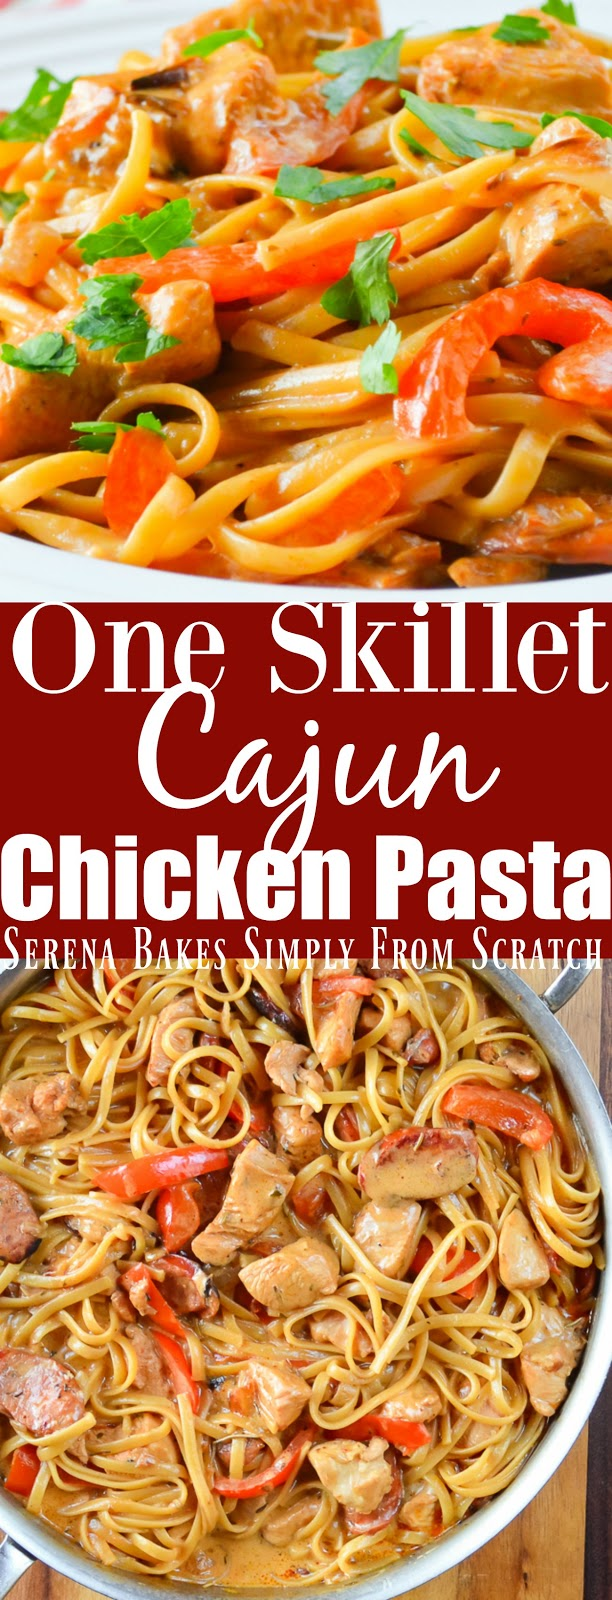 One Skillet Cajun Chicken Pasta is an easy dinner recipe in under 30 min.